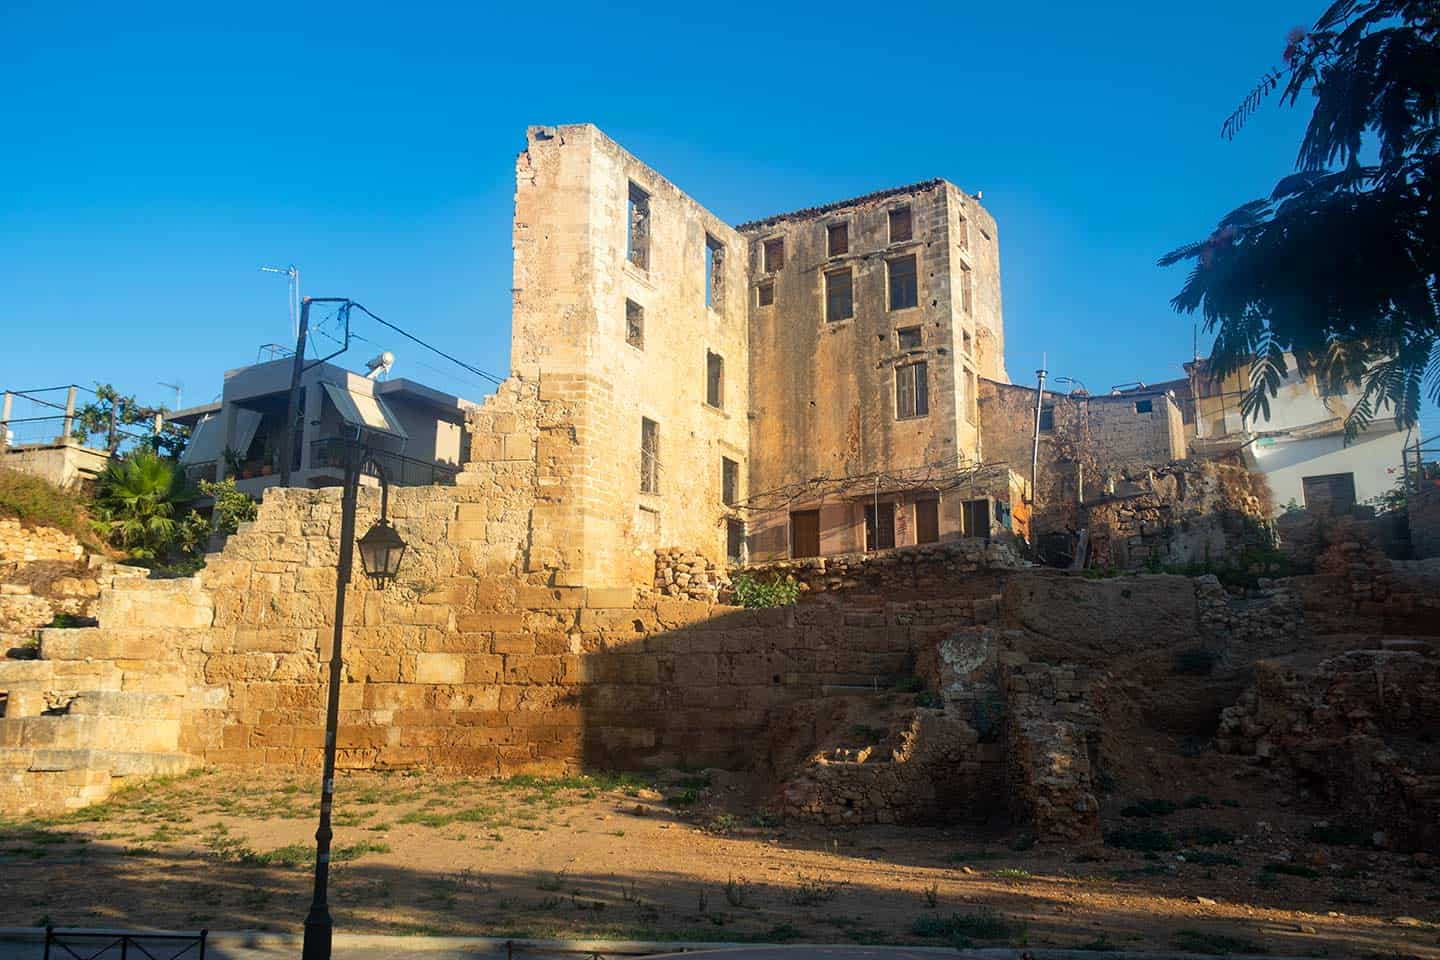 Image of the Byzantine walls in Chania Crete